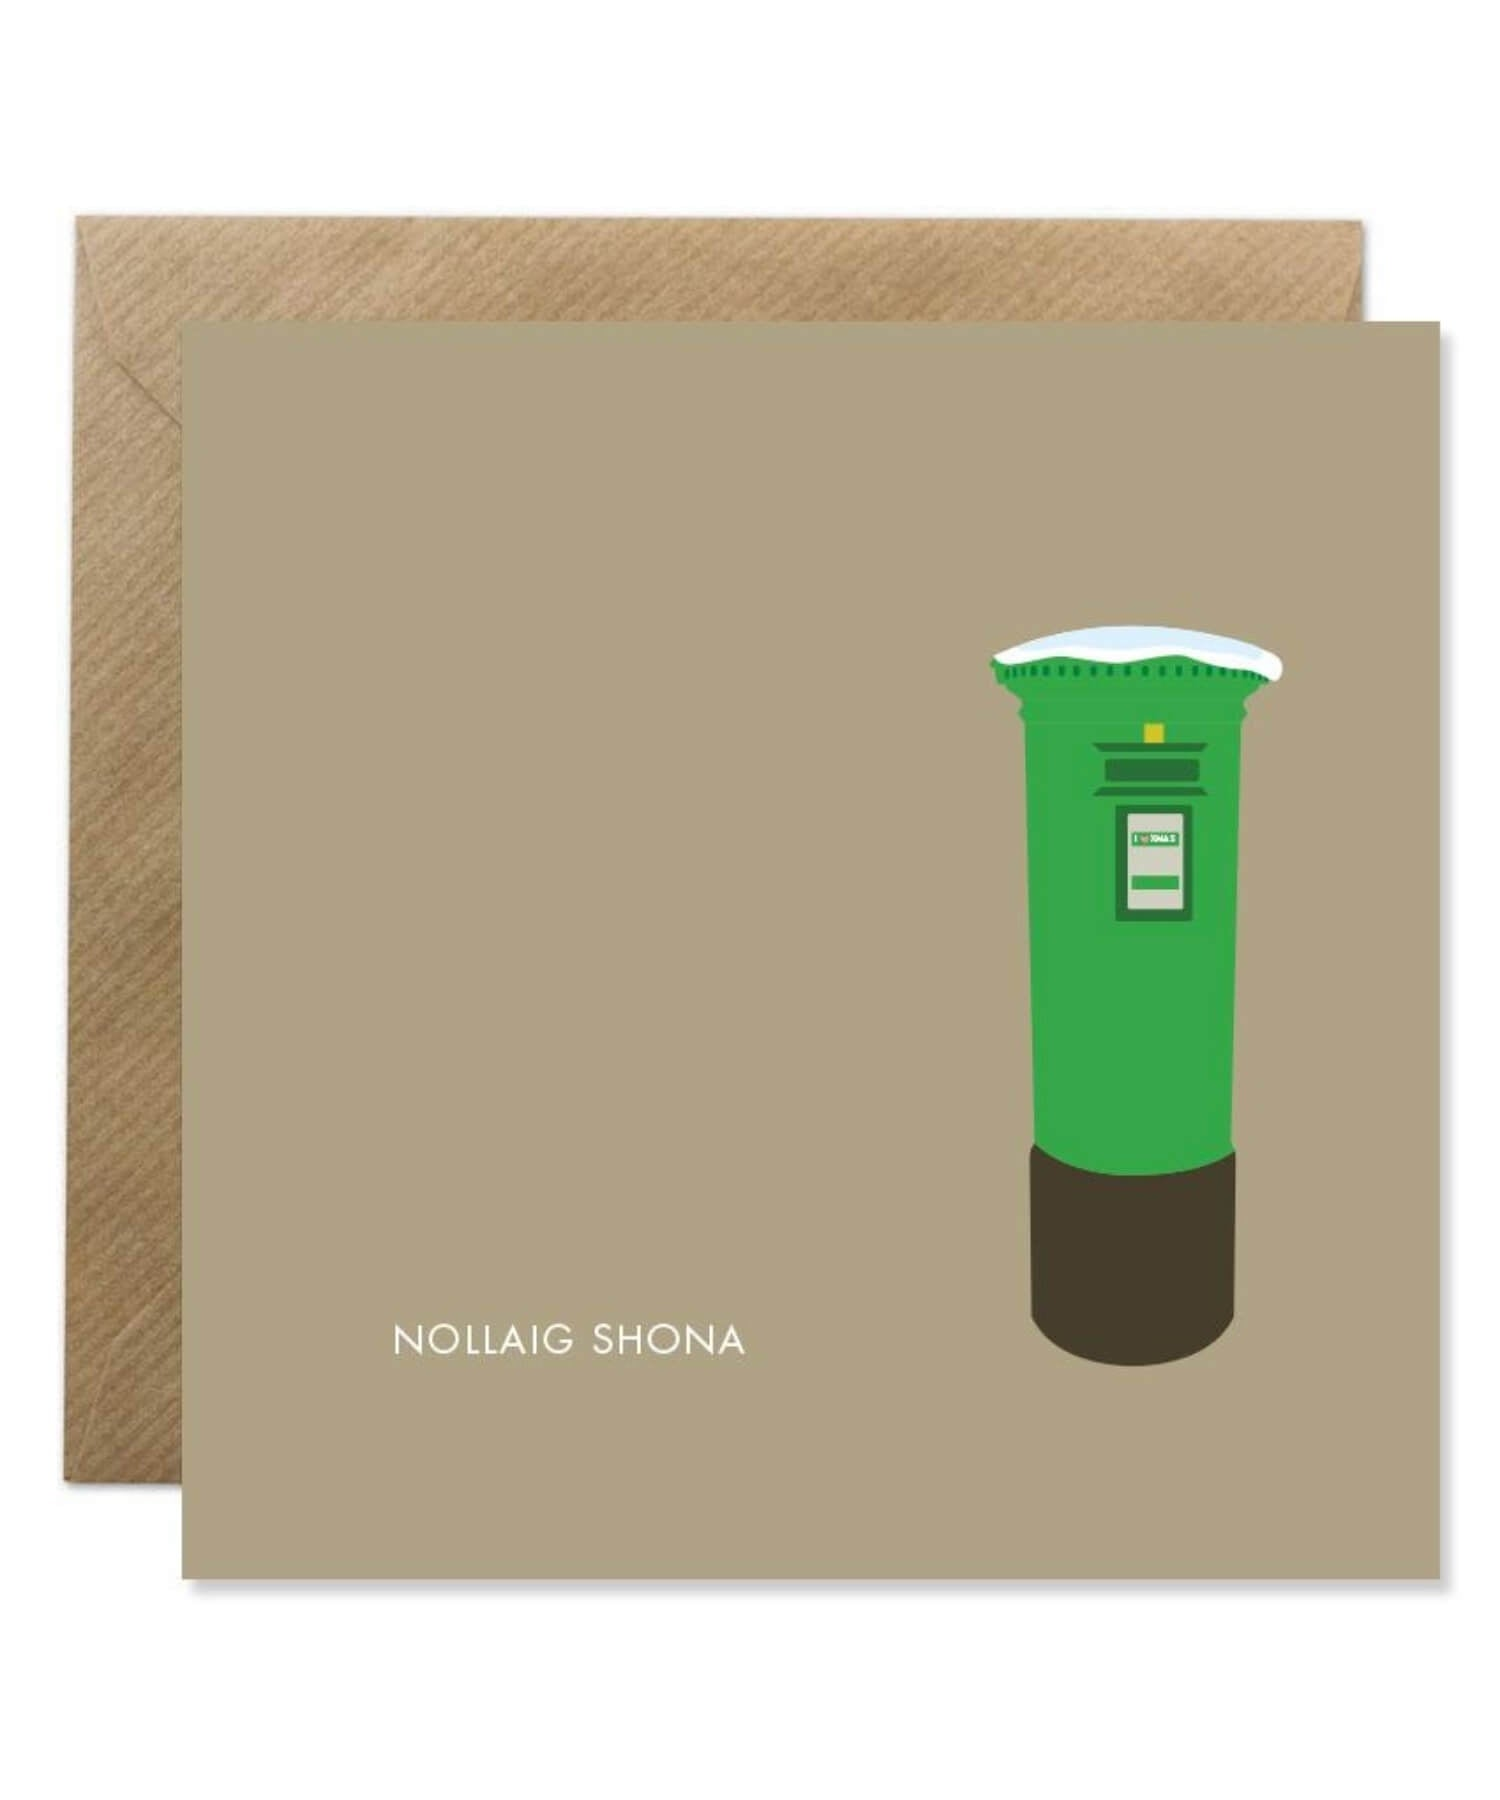 Greeting Card - Nollaig Shona - Postbox - [Bold Bunny] - Greeting Cards - Irish Gifts